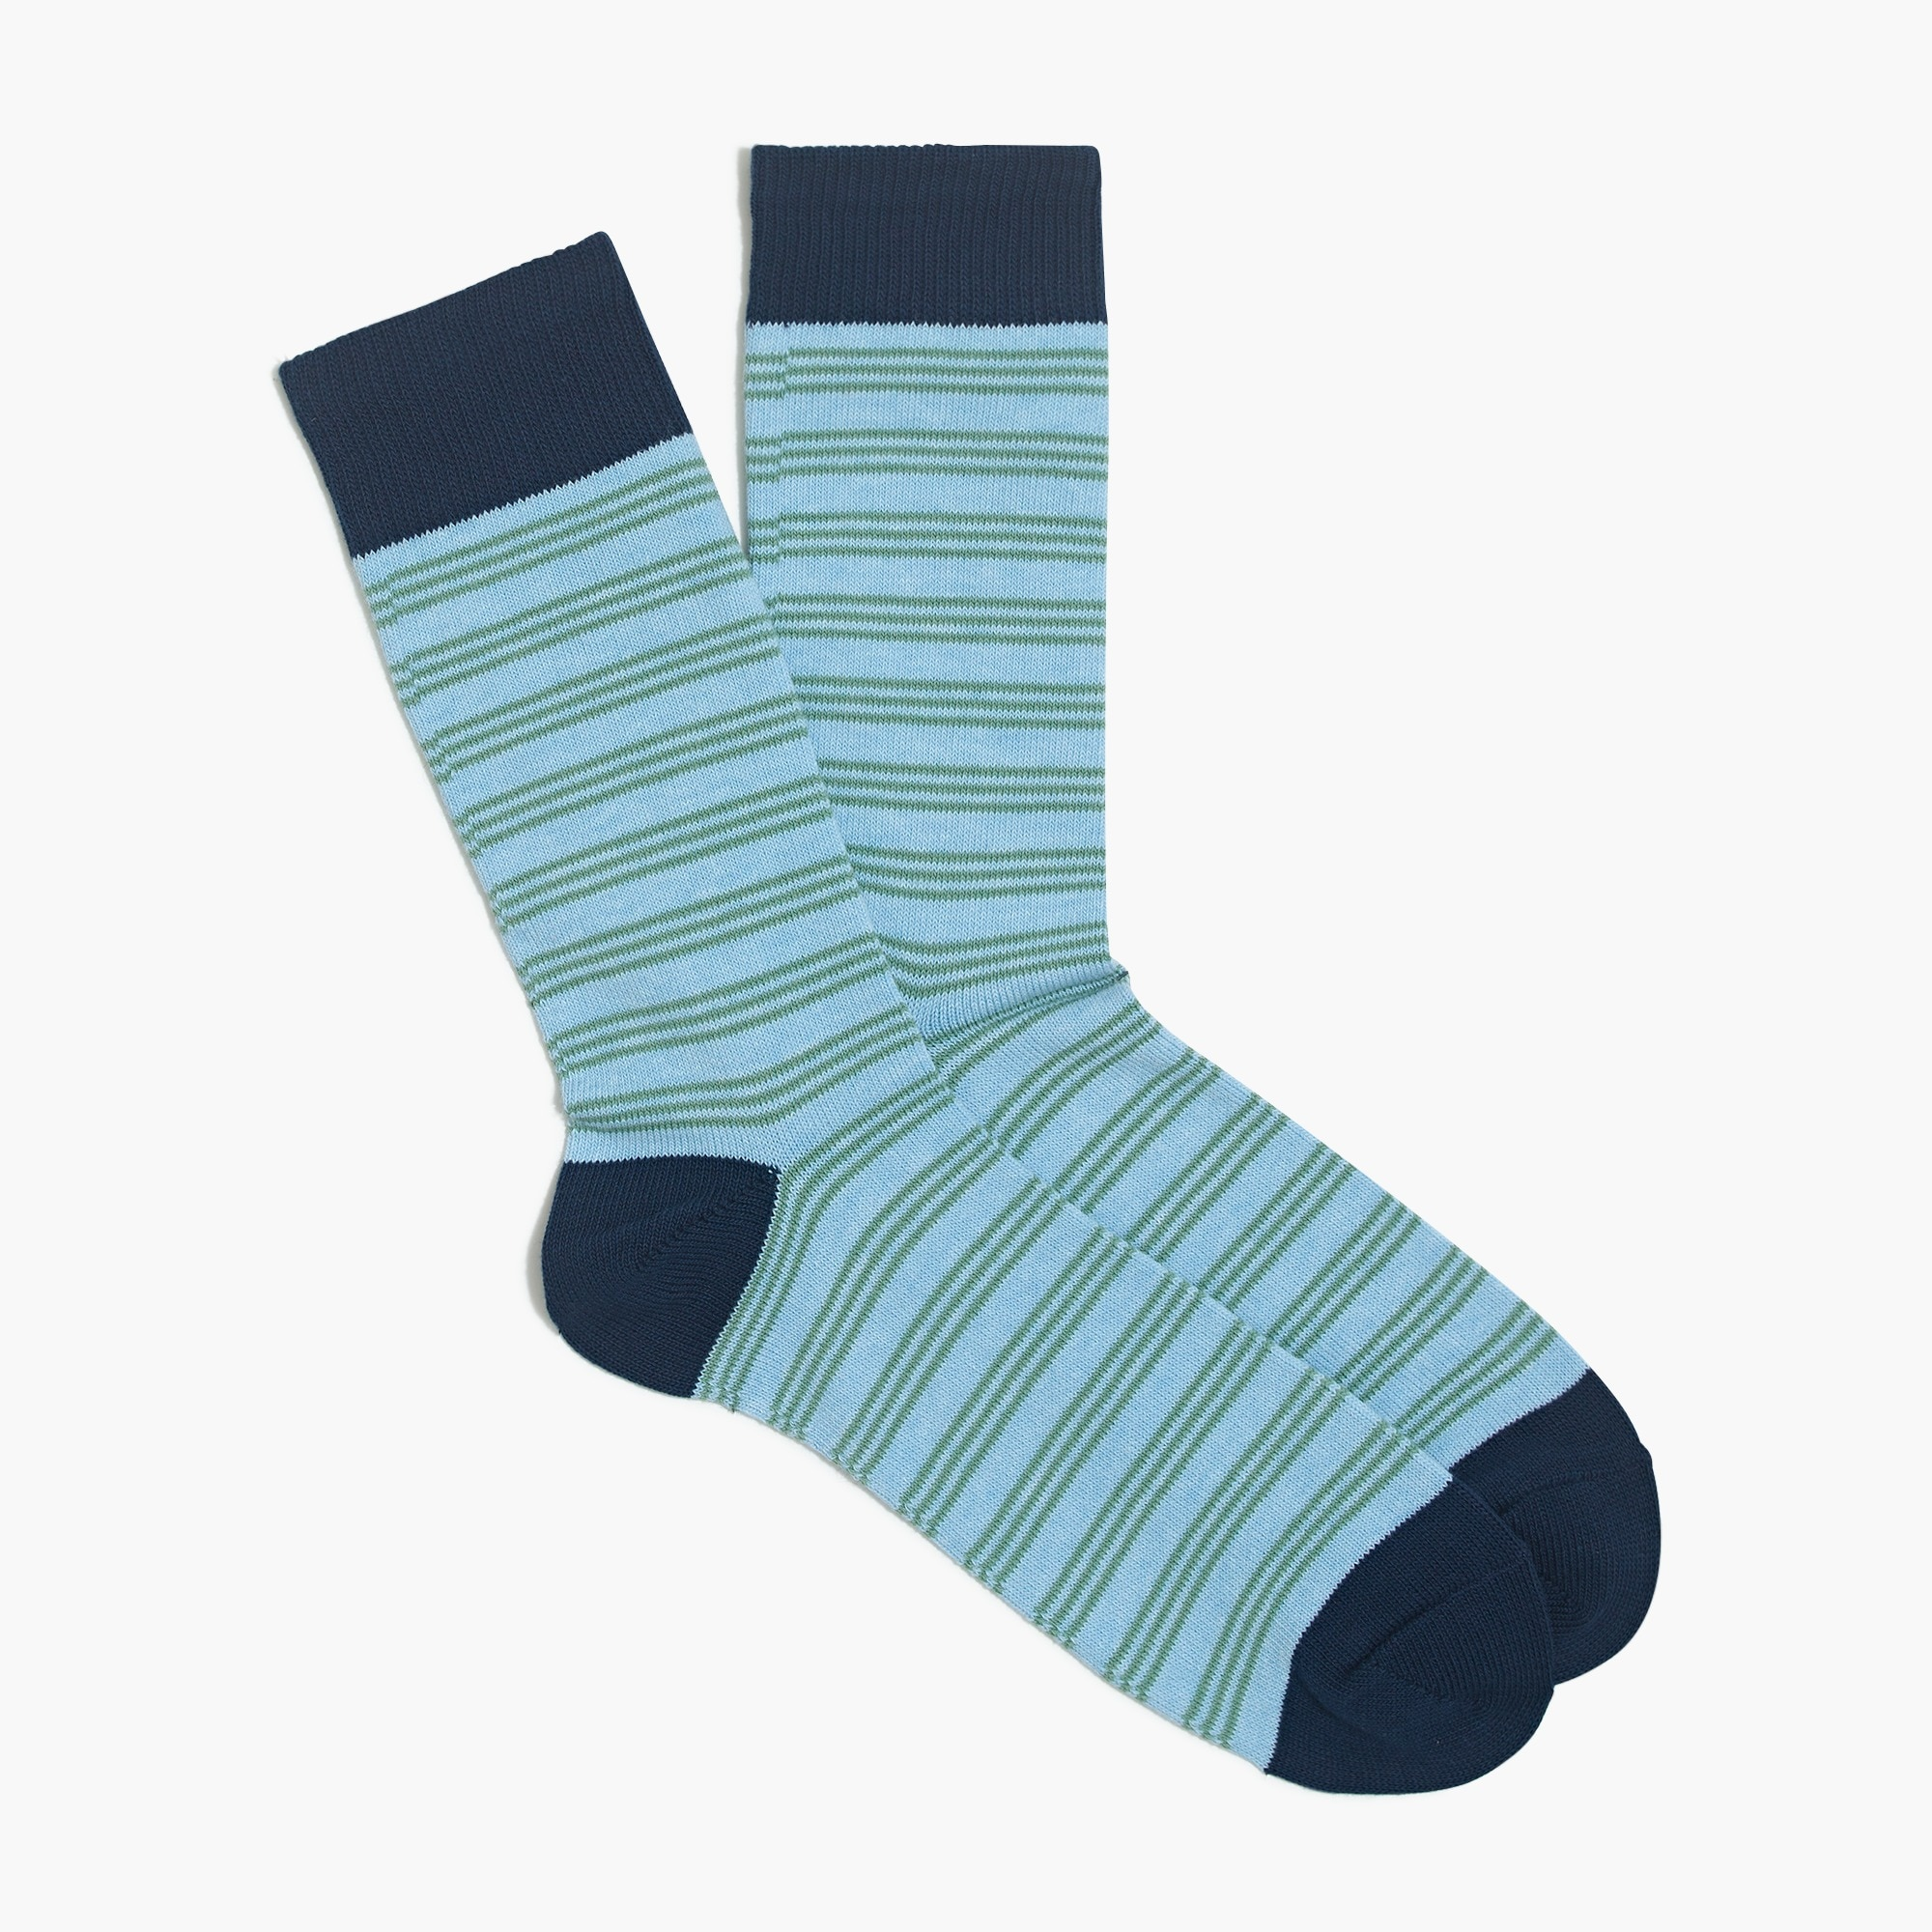 Image 1 for Triple narrow-striped socks